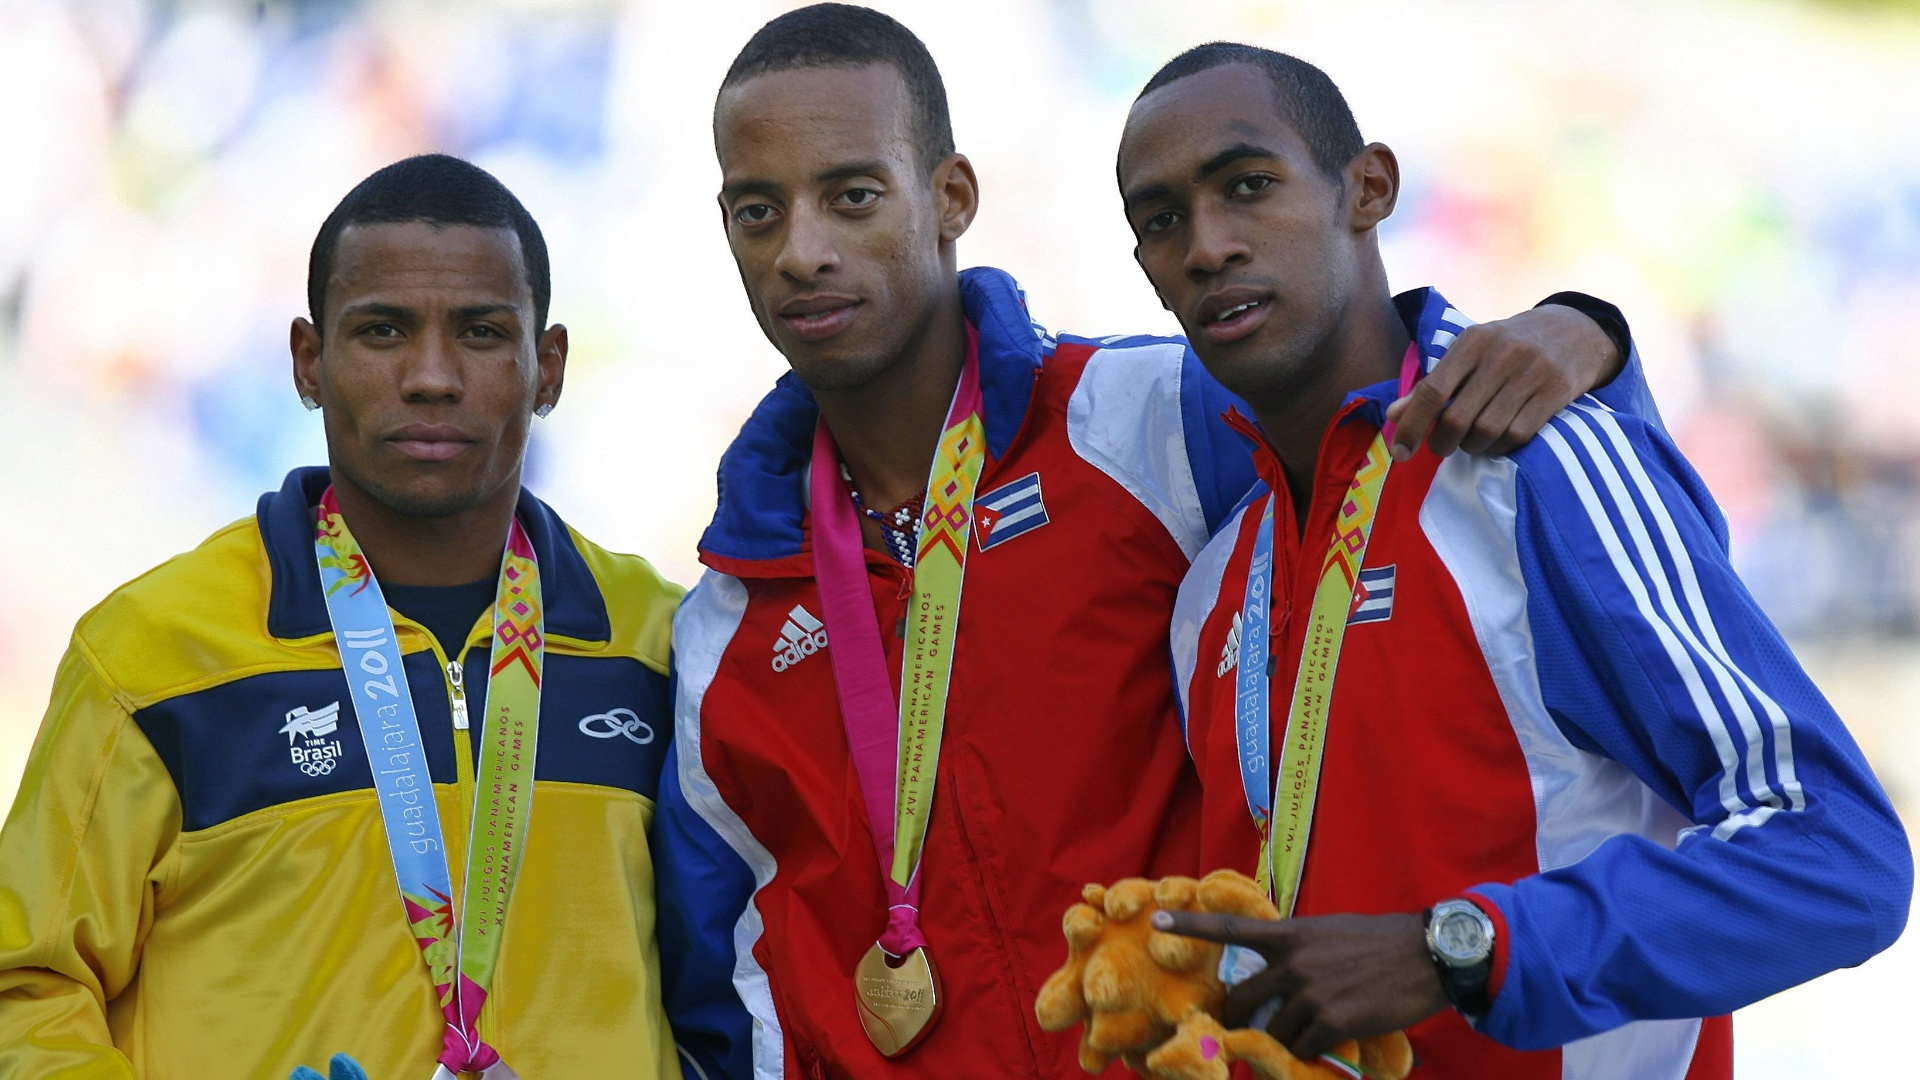 Kleberson Davide conquistou a medalha de prata nos 800 m (28/10/2011)